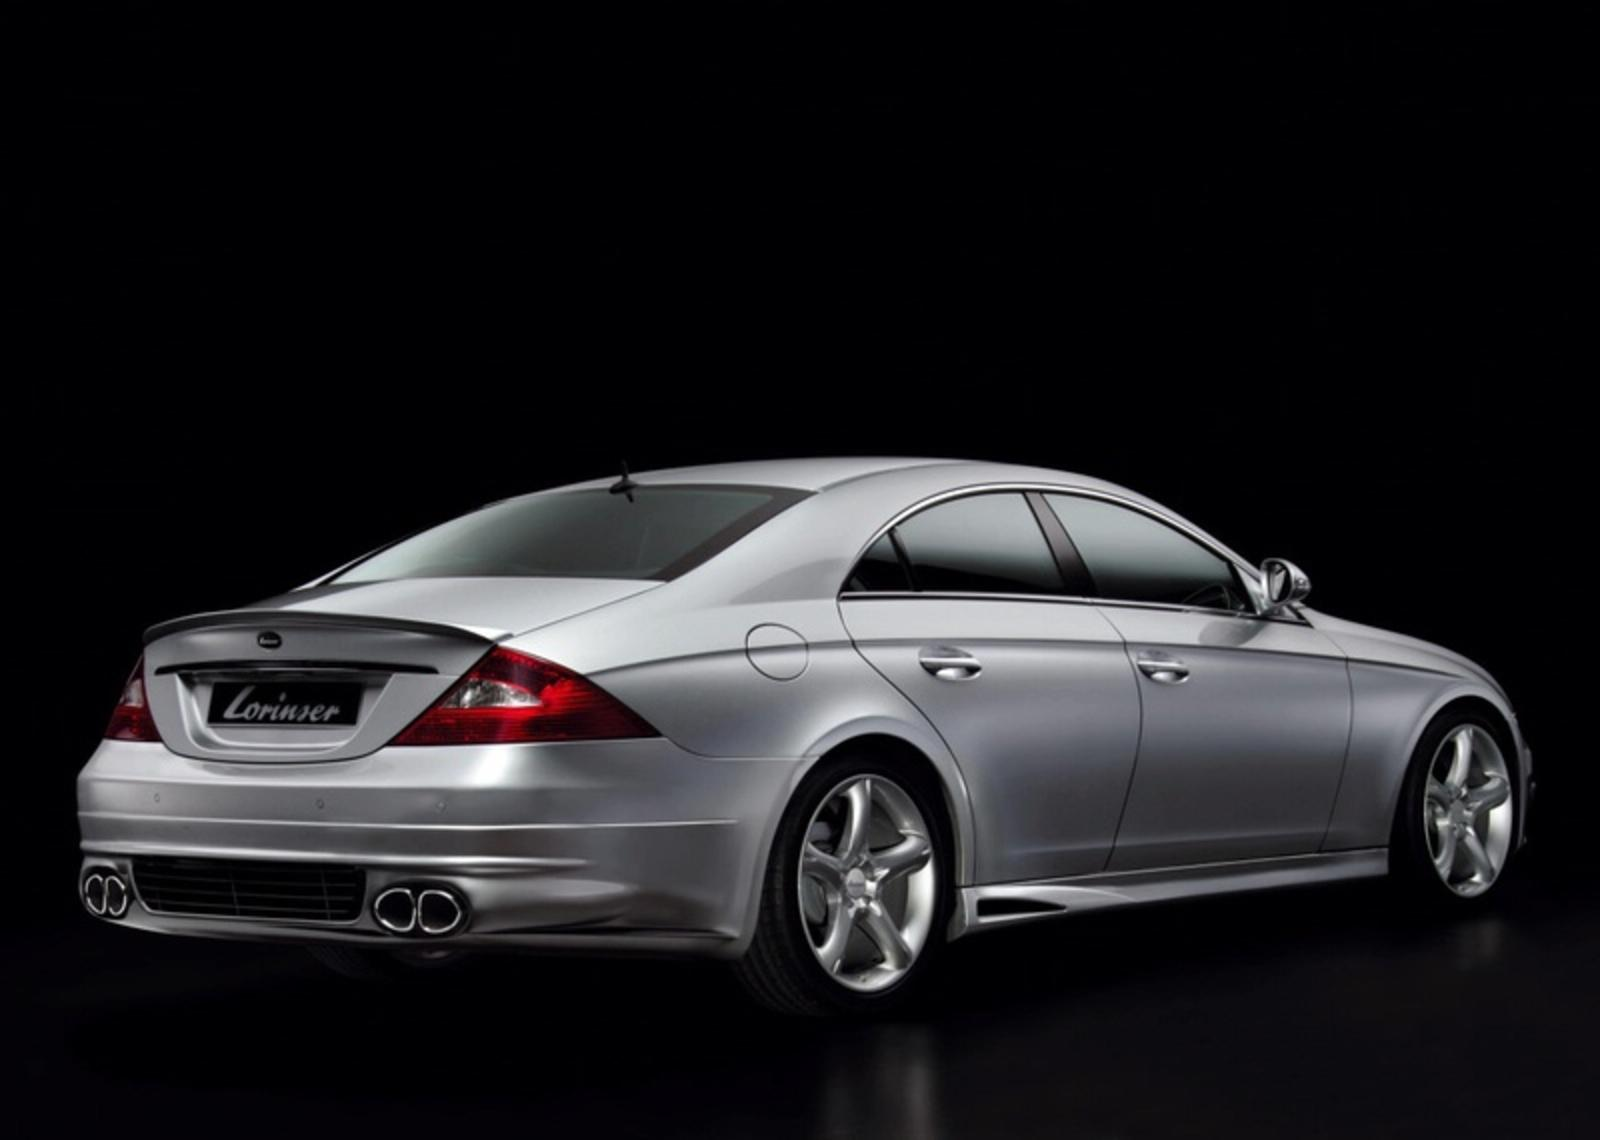 lorinser cls l 55 rs based on the mercedes cls news gallery top speed. Black Bedroom Furniture Sets. Home Design Ideas